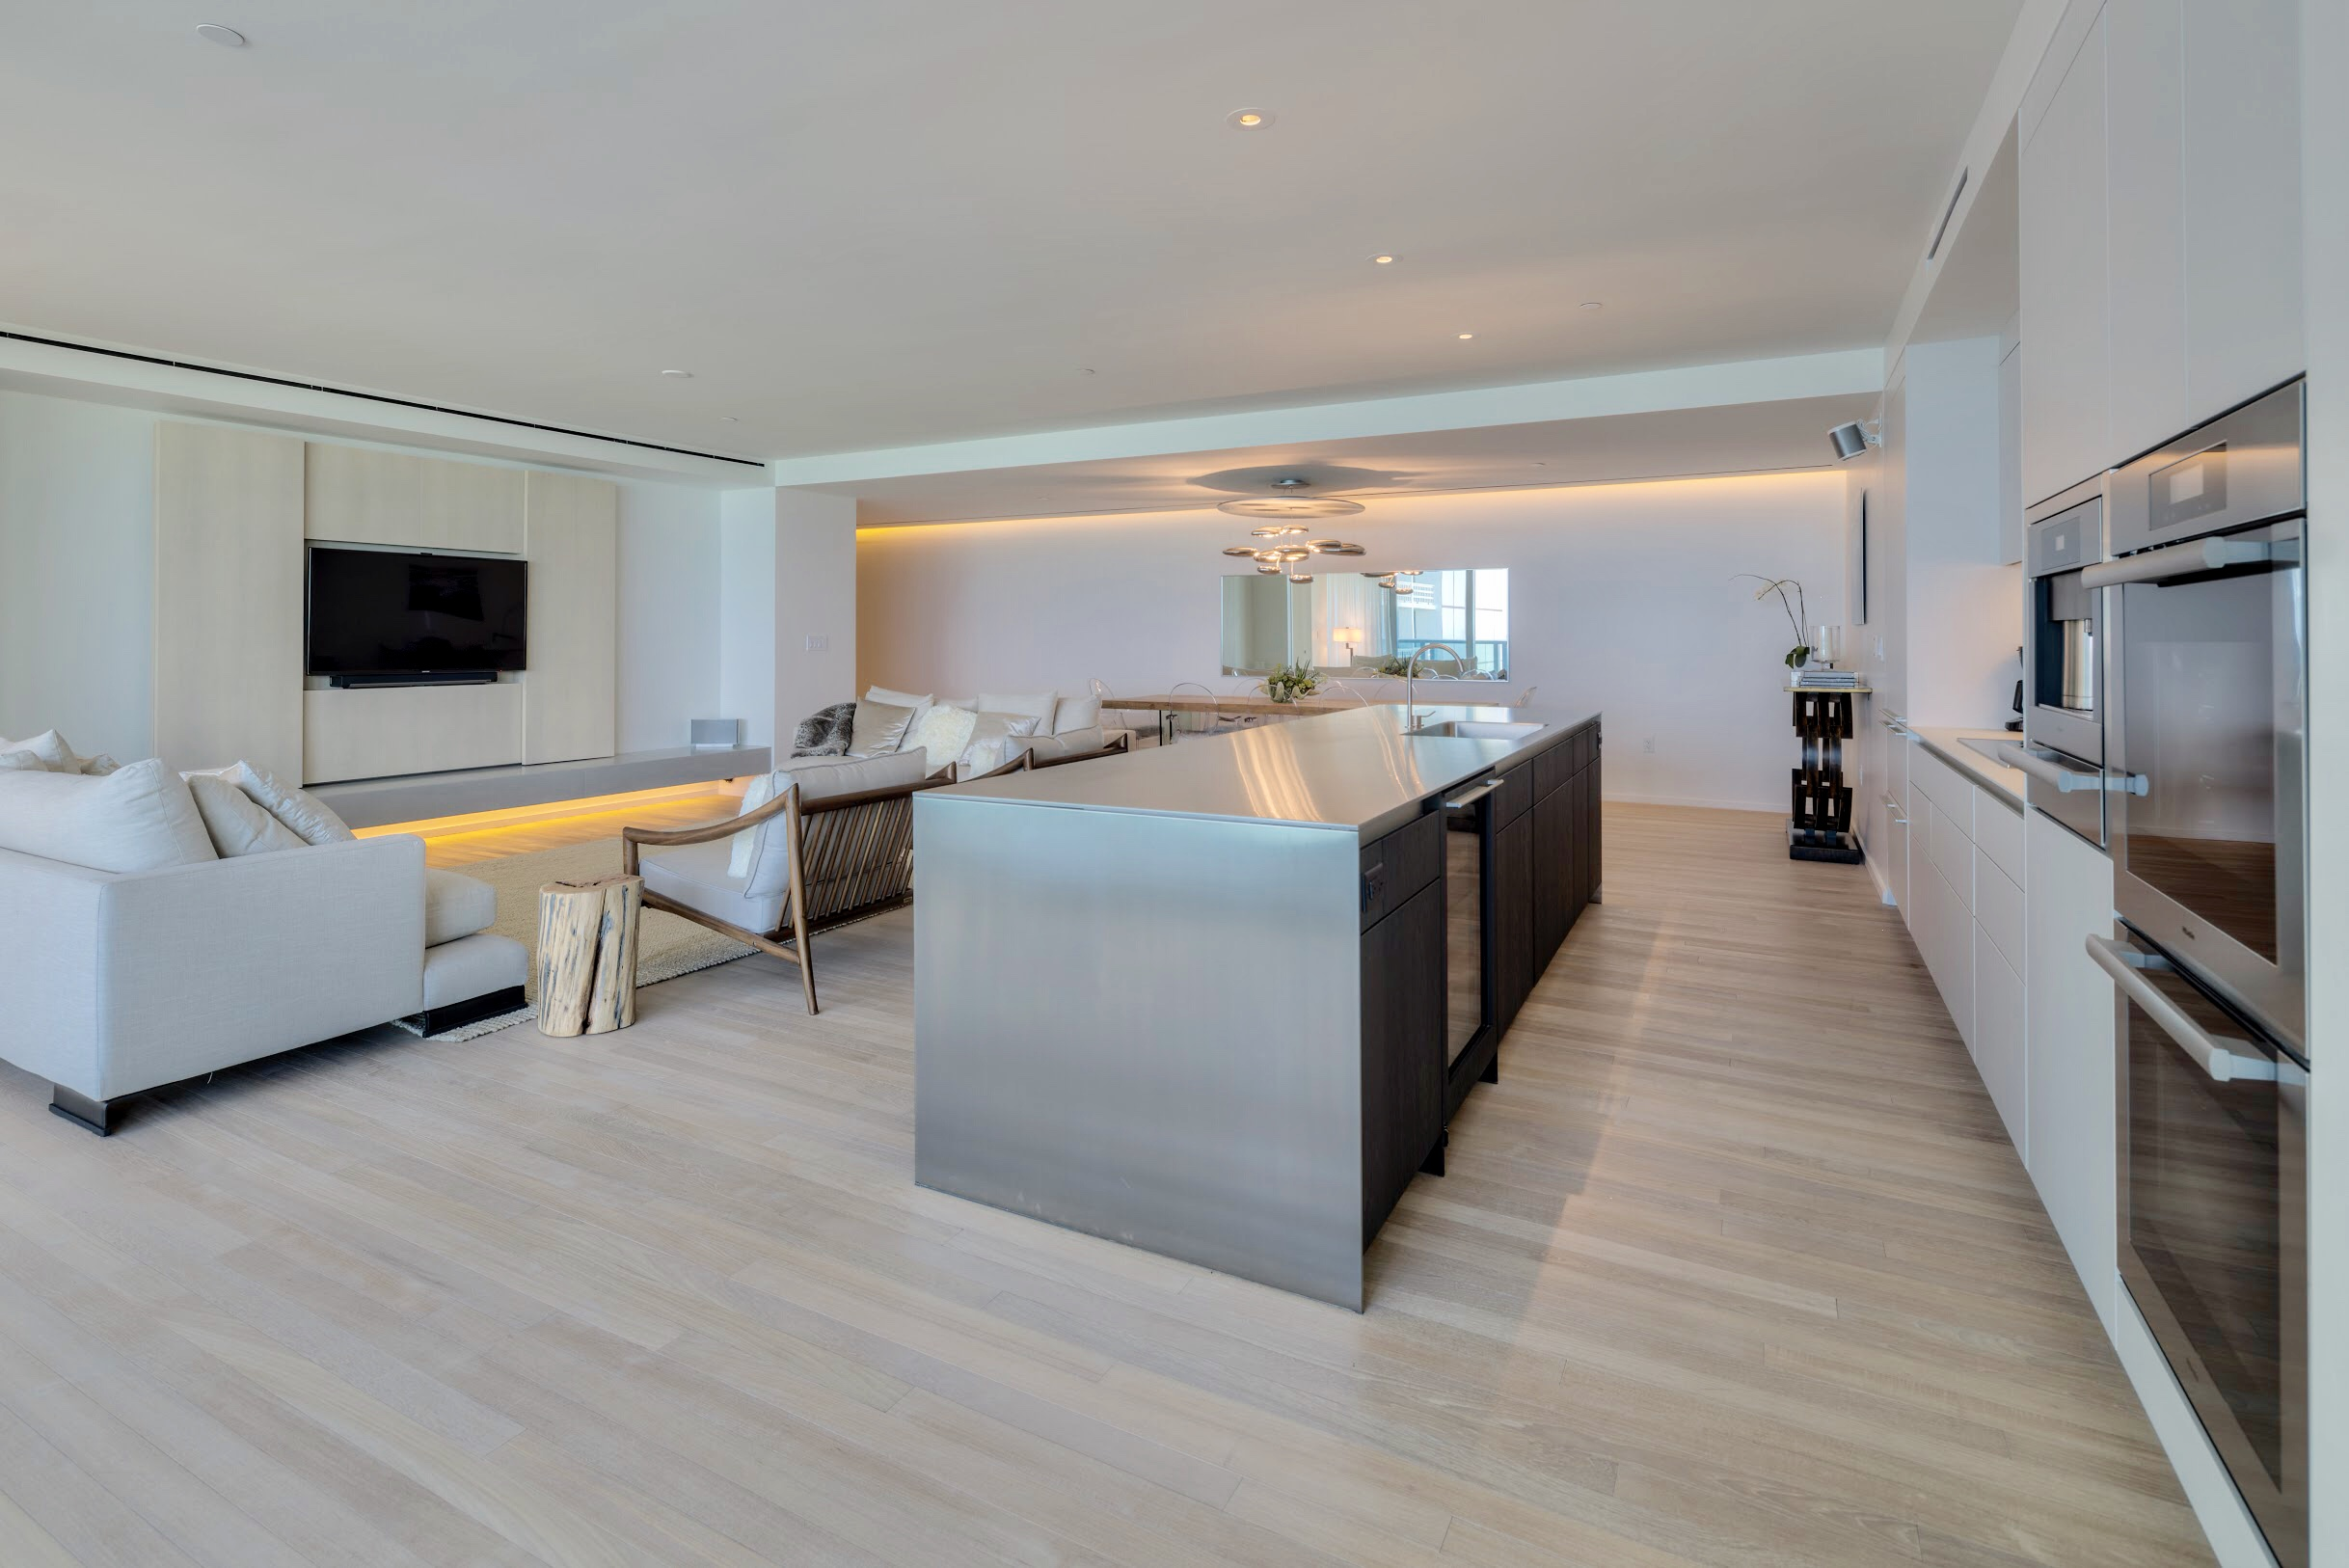 Awesome 3 Bedroom Luxury Condo Beachfront Luxury Condo Miami Download Free Architecture Designs Intelgarnamadebymaigaardcom